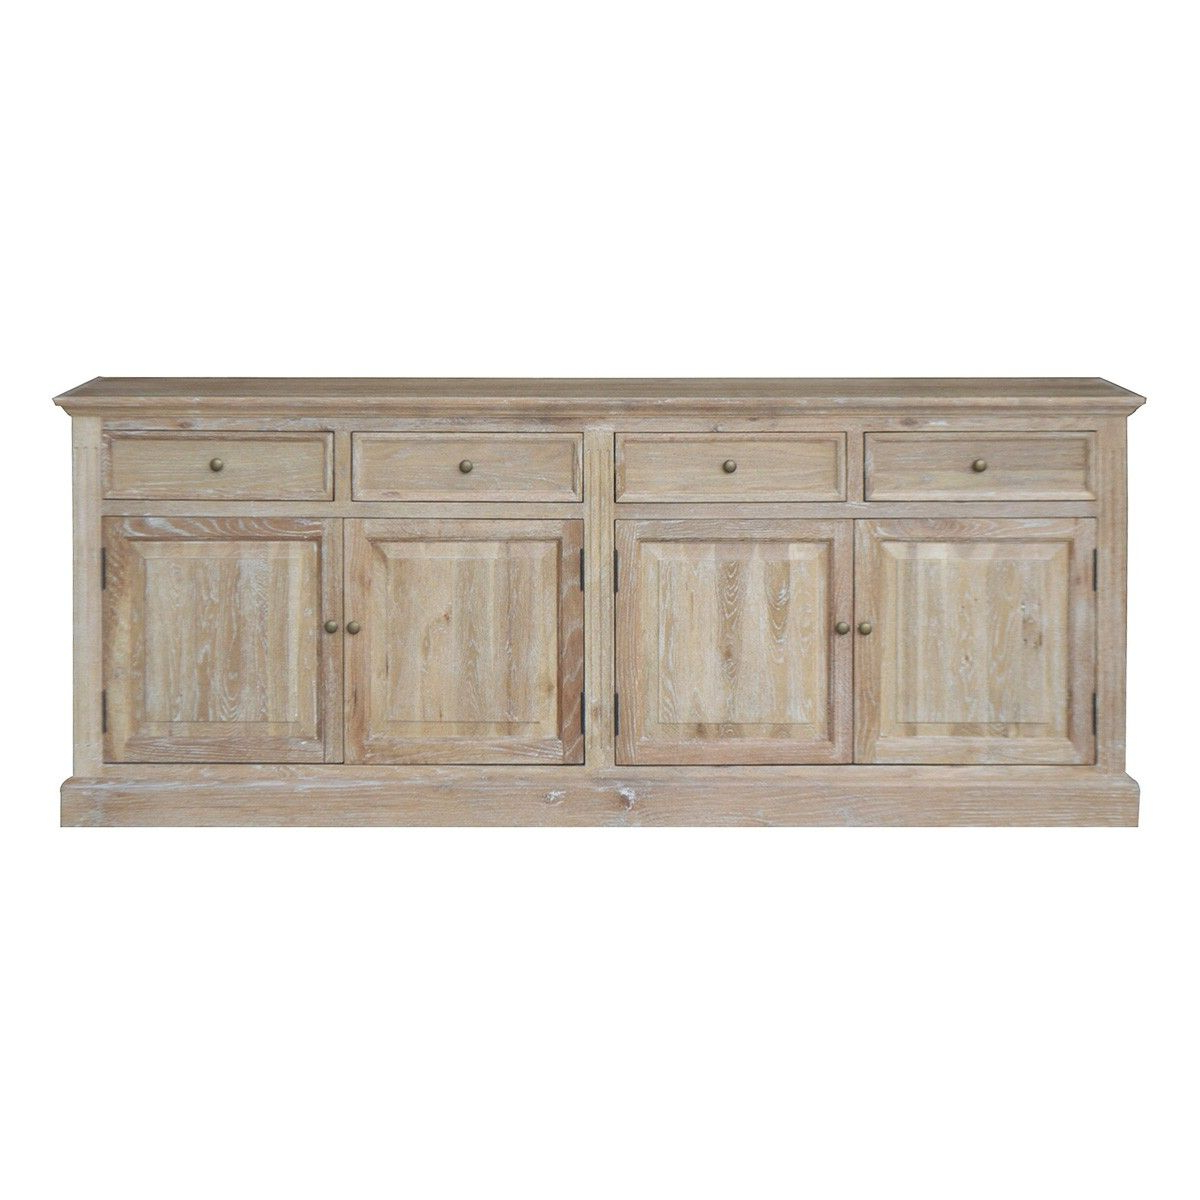 """Widely Used Bardia Oak Timber 4 Door 4 Drawer Sideboard, 200cm, Lime Intended For Albright 58"""" Wide 3 Drawer Sideboards (View 14 of 20)"""